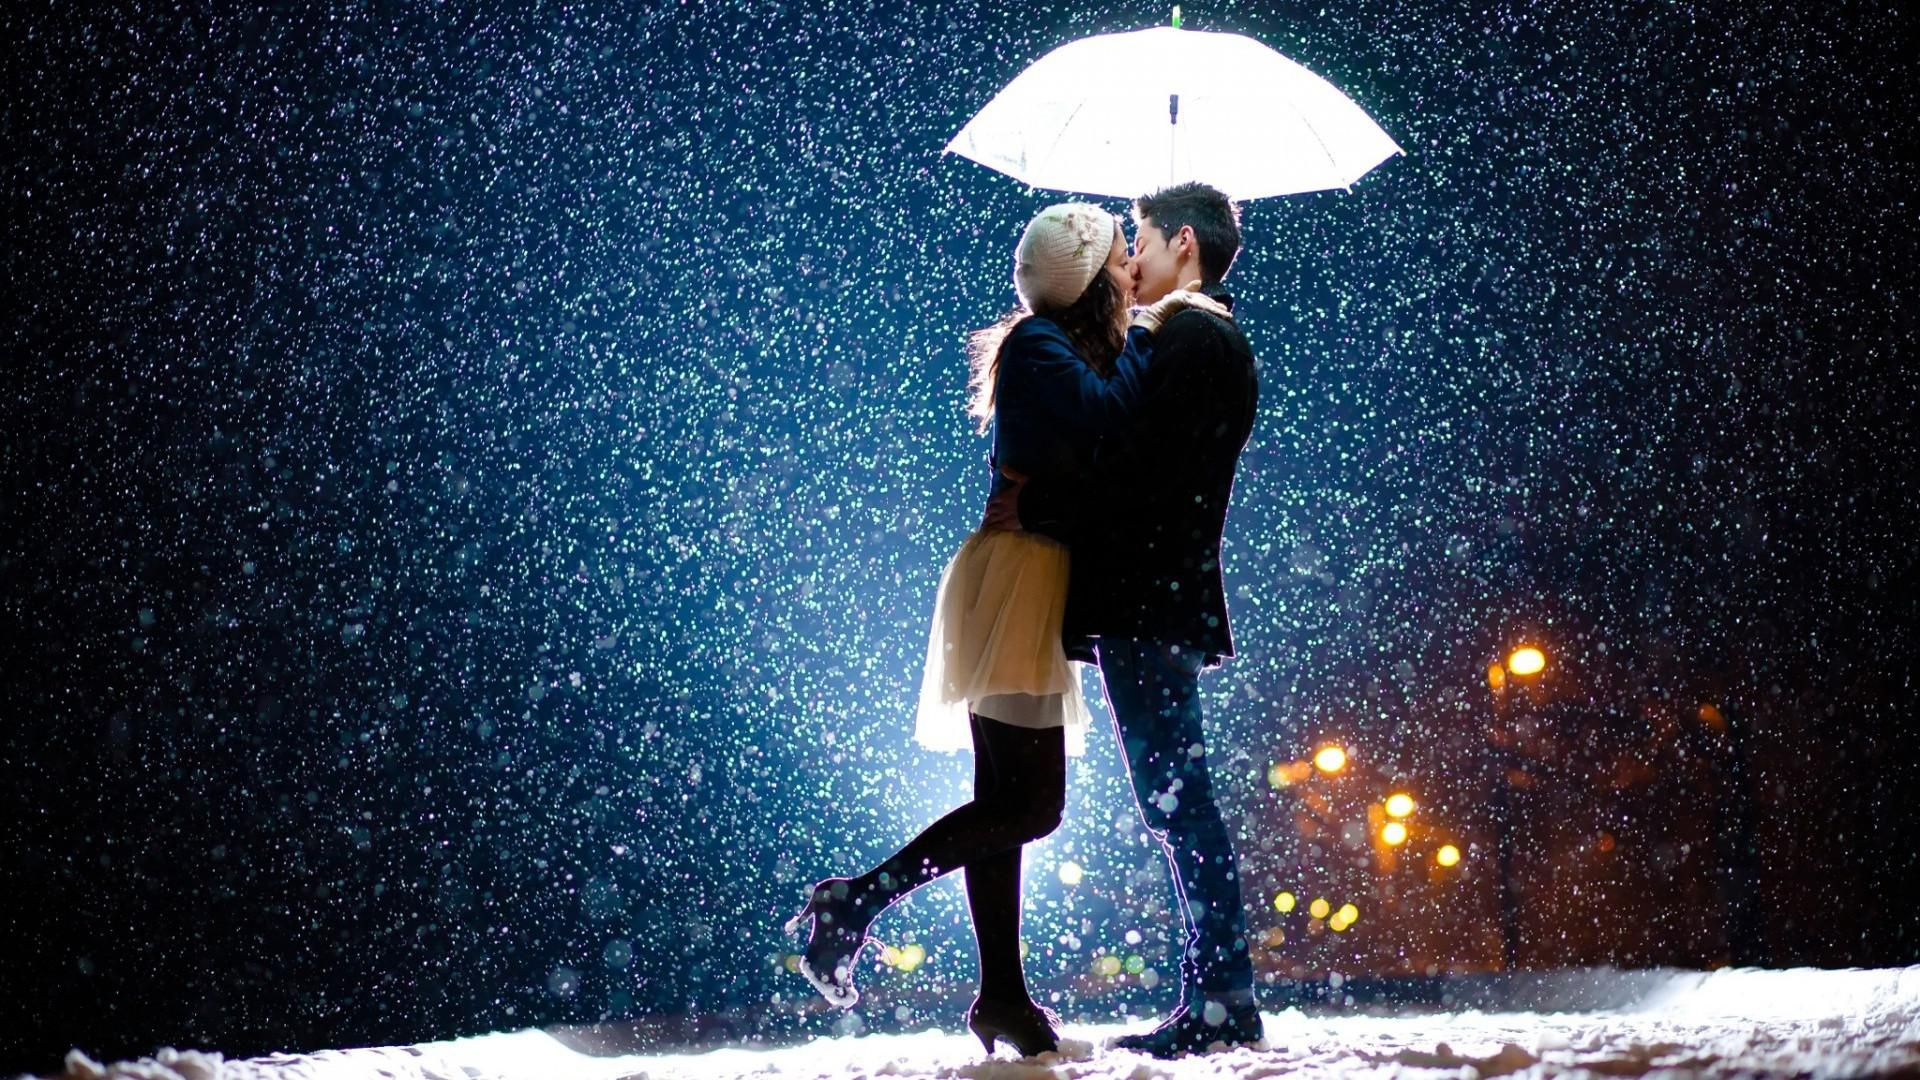 Top 100 Hd Love Wallpapers High Quality Love Couple Wallpaper